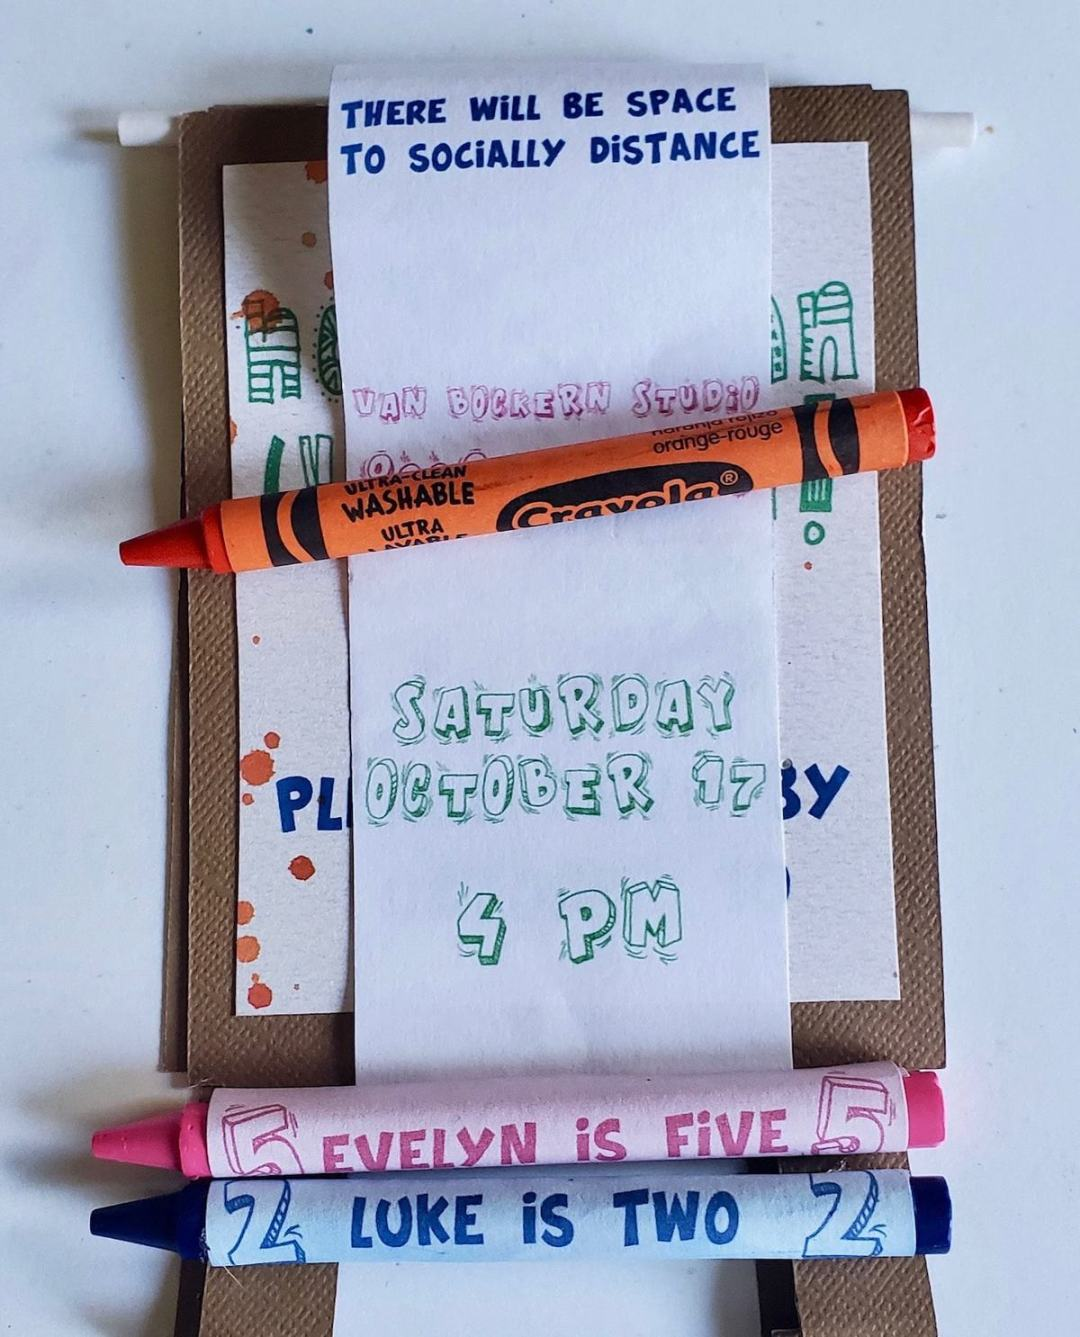 Photo of narrow piece of paper that reads THE VAN BOCKERN SUTDIO; SATURDAY OCTOBER 17, 4 PM; 2 crayons that reads LUKE IS 2, EVELYN IS 4